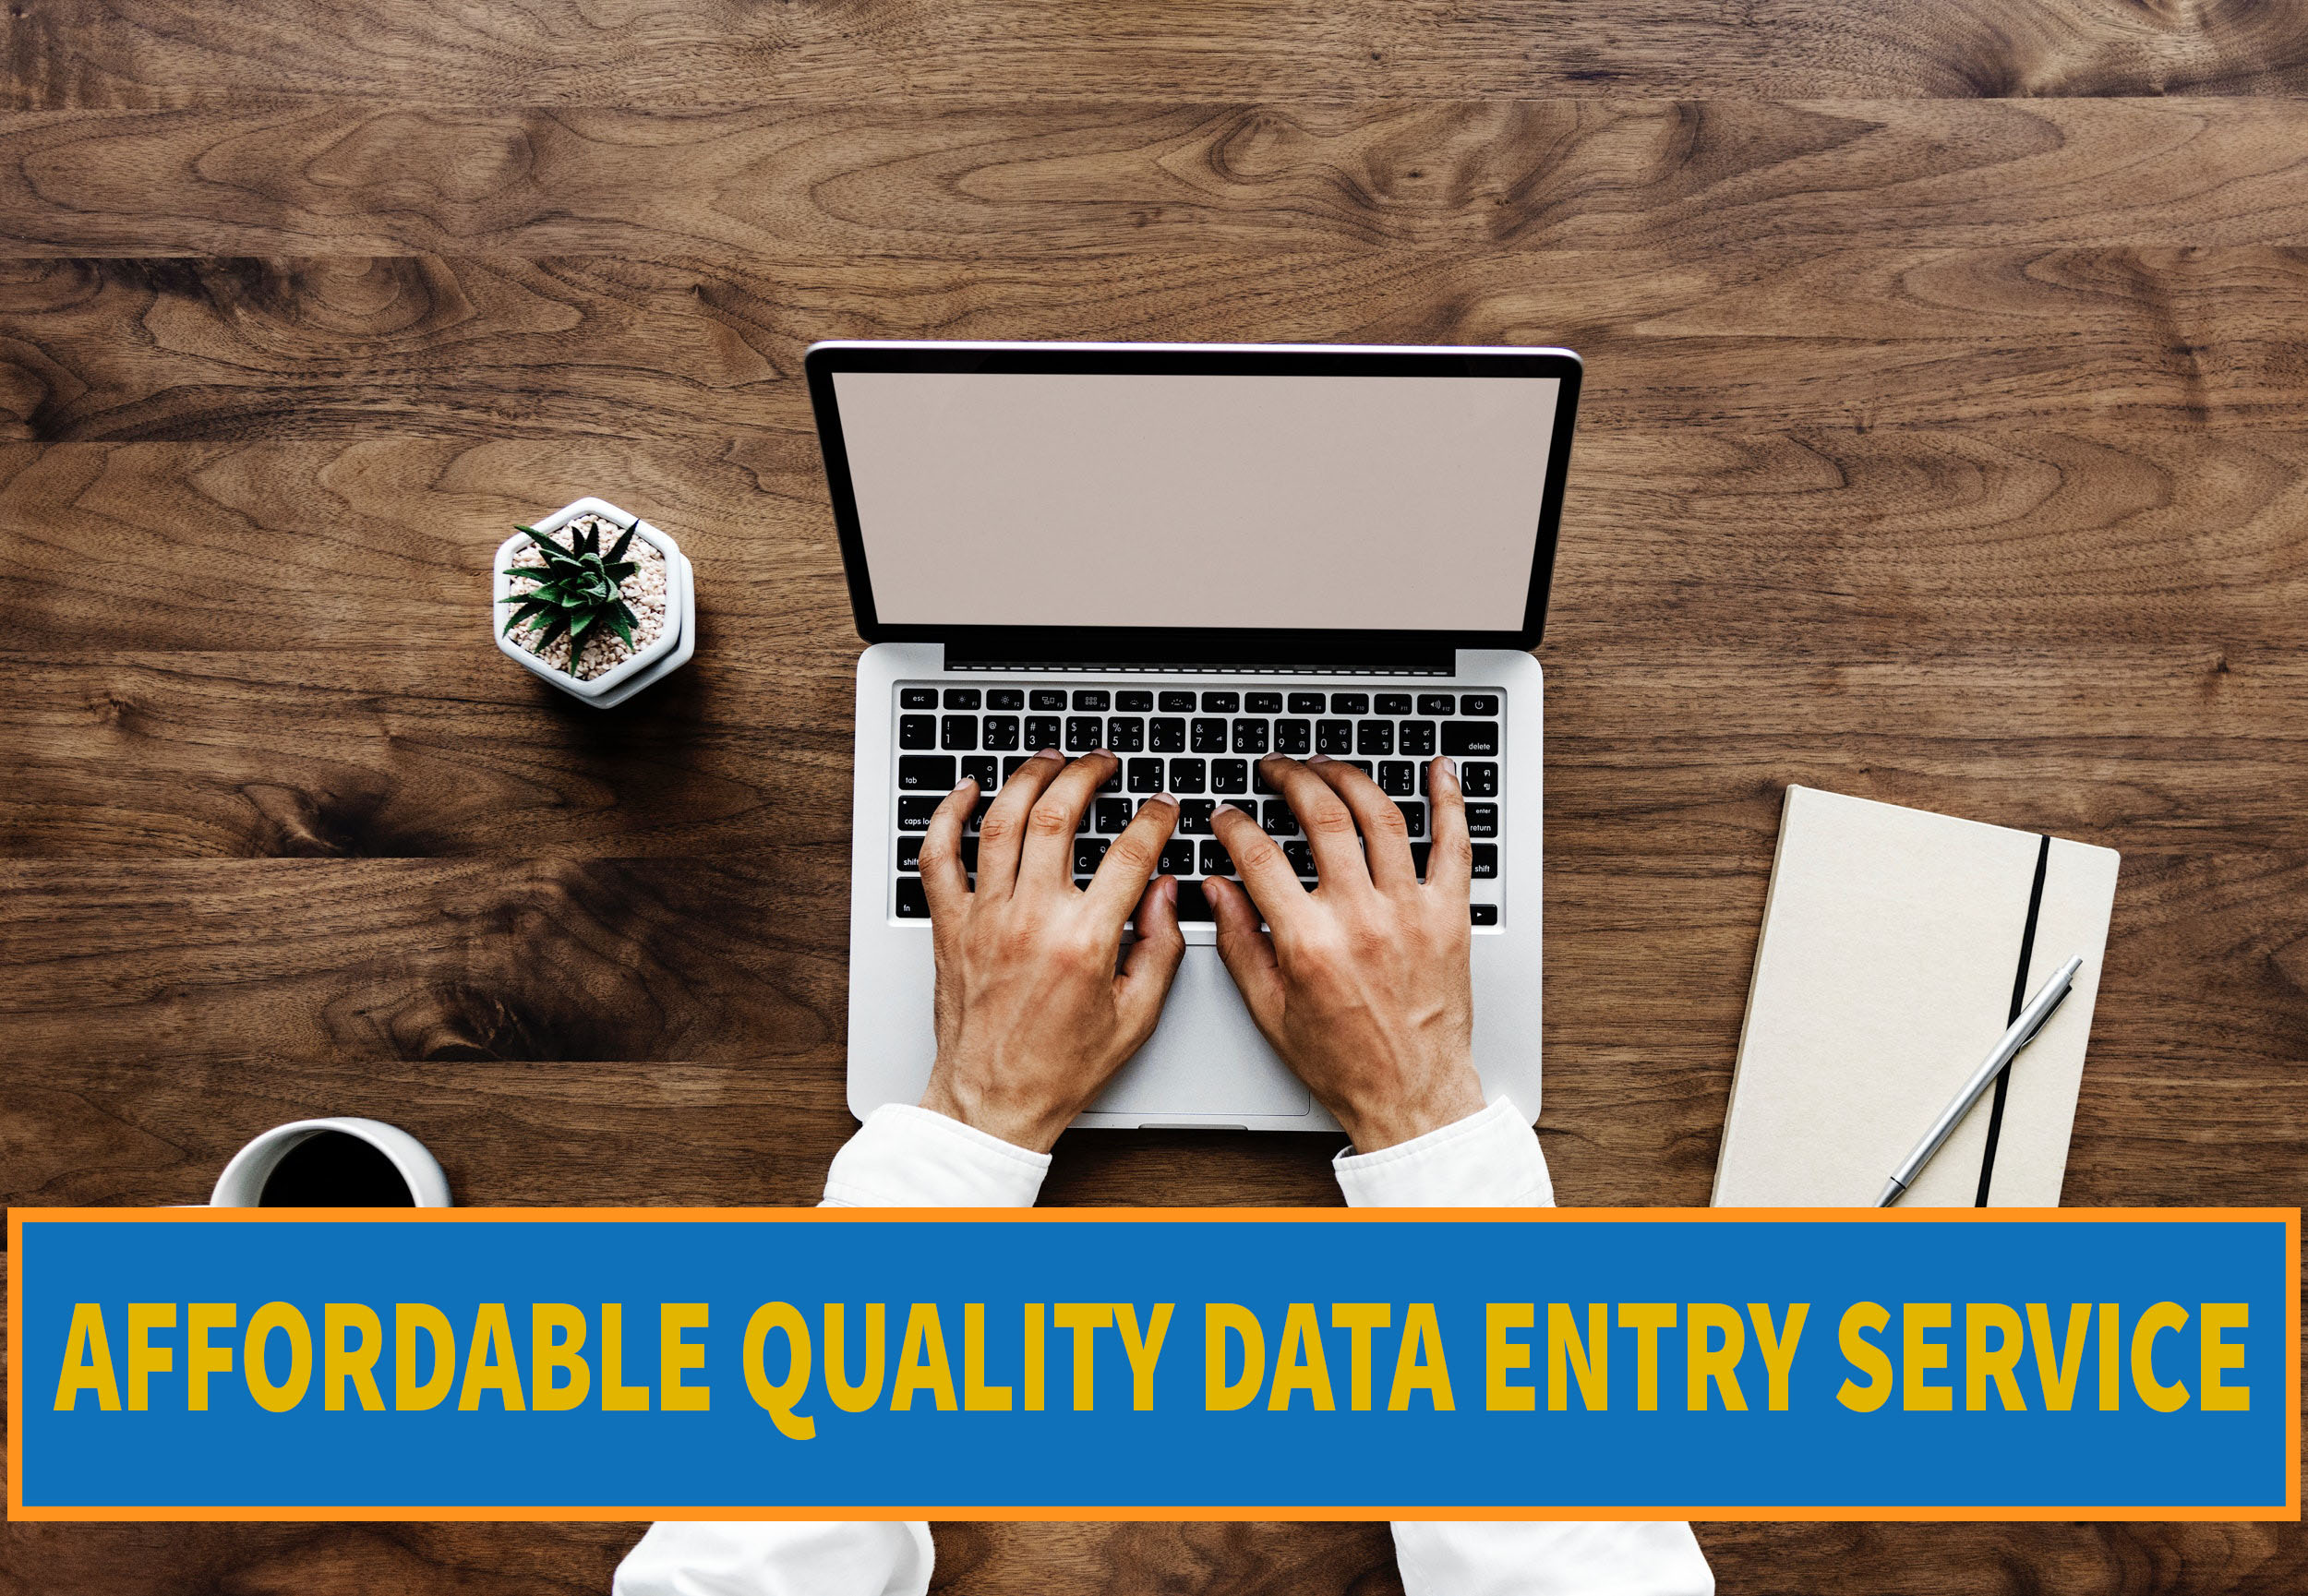 Affordable Data Entry Job